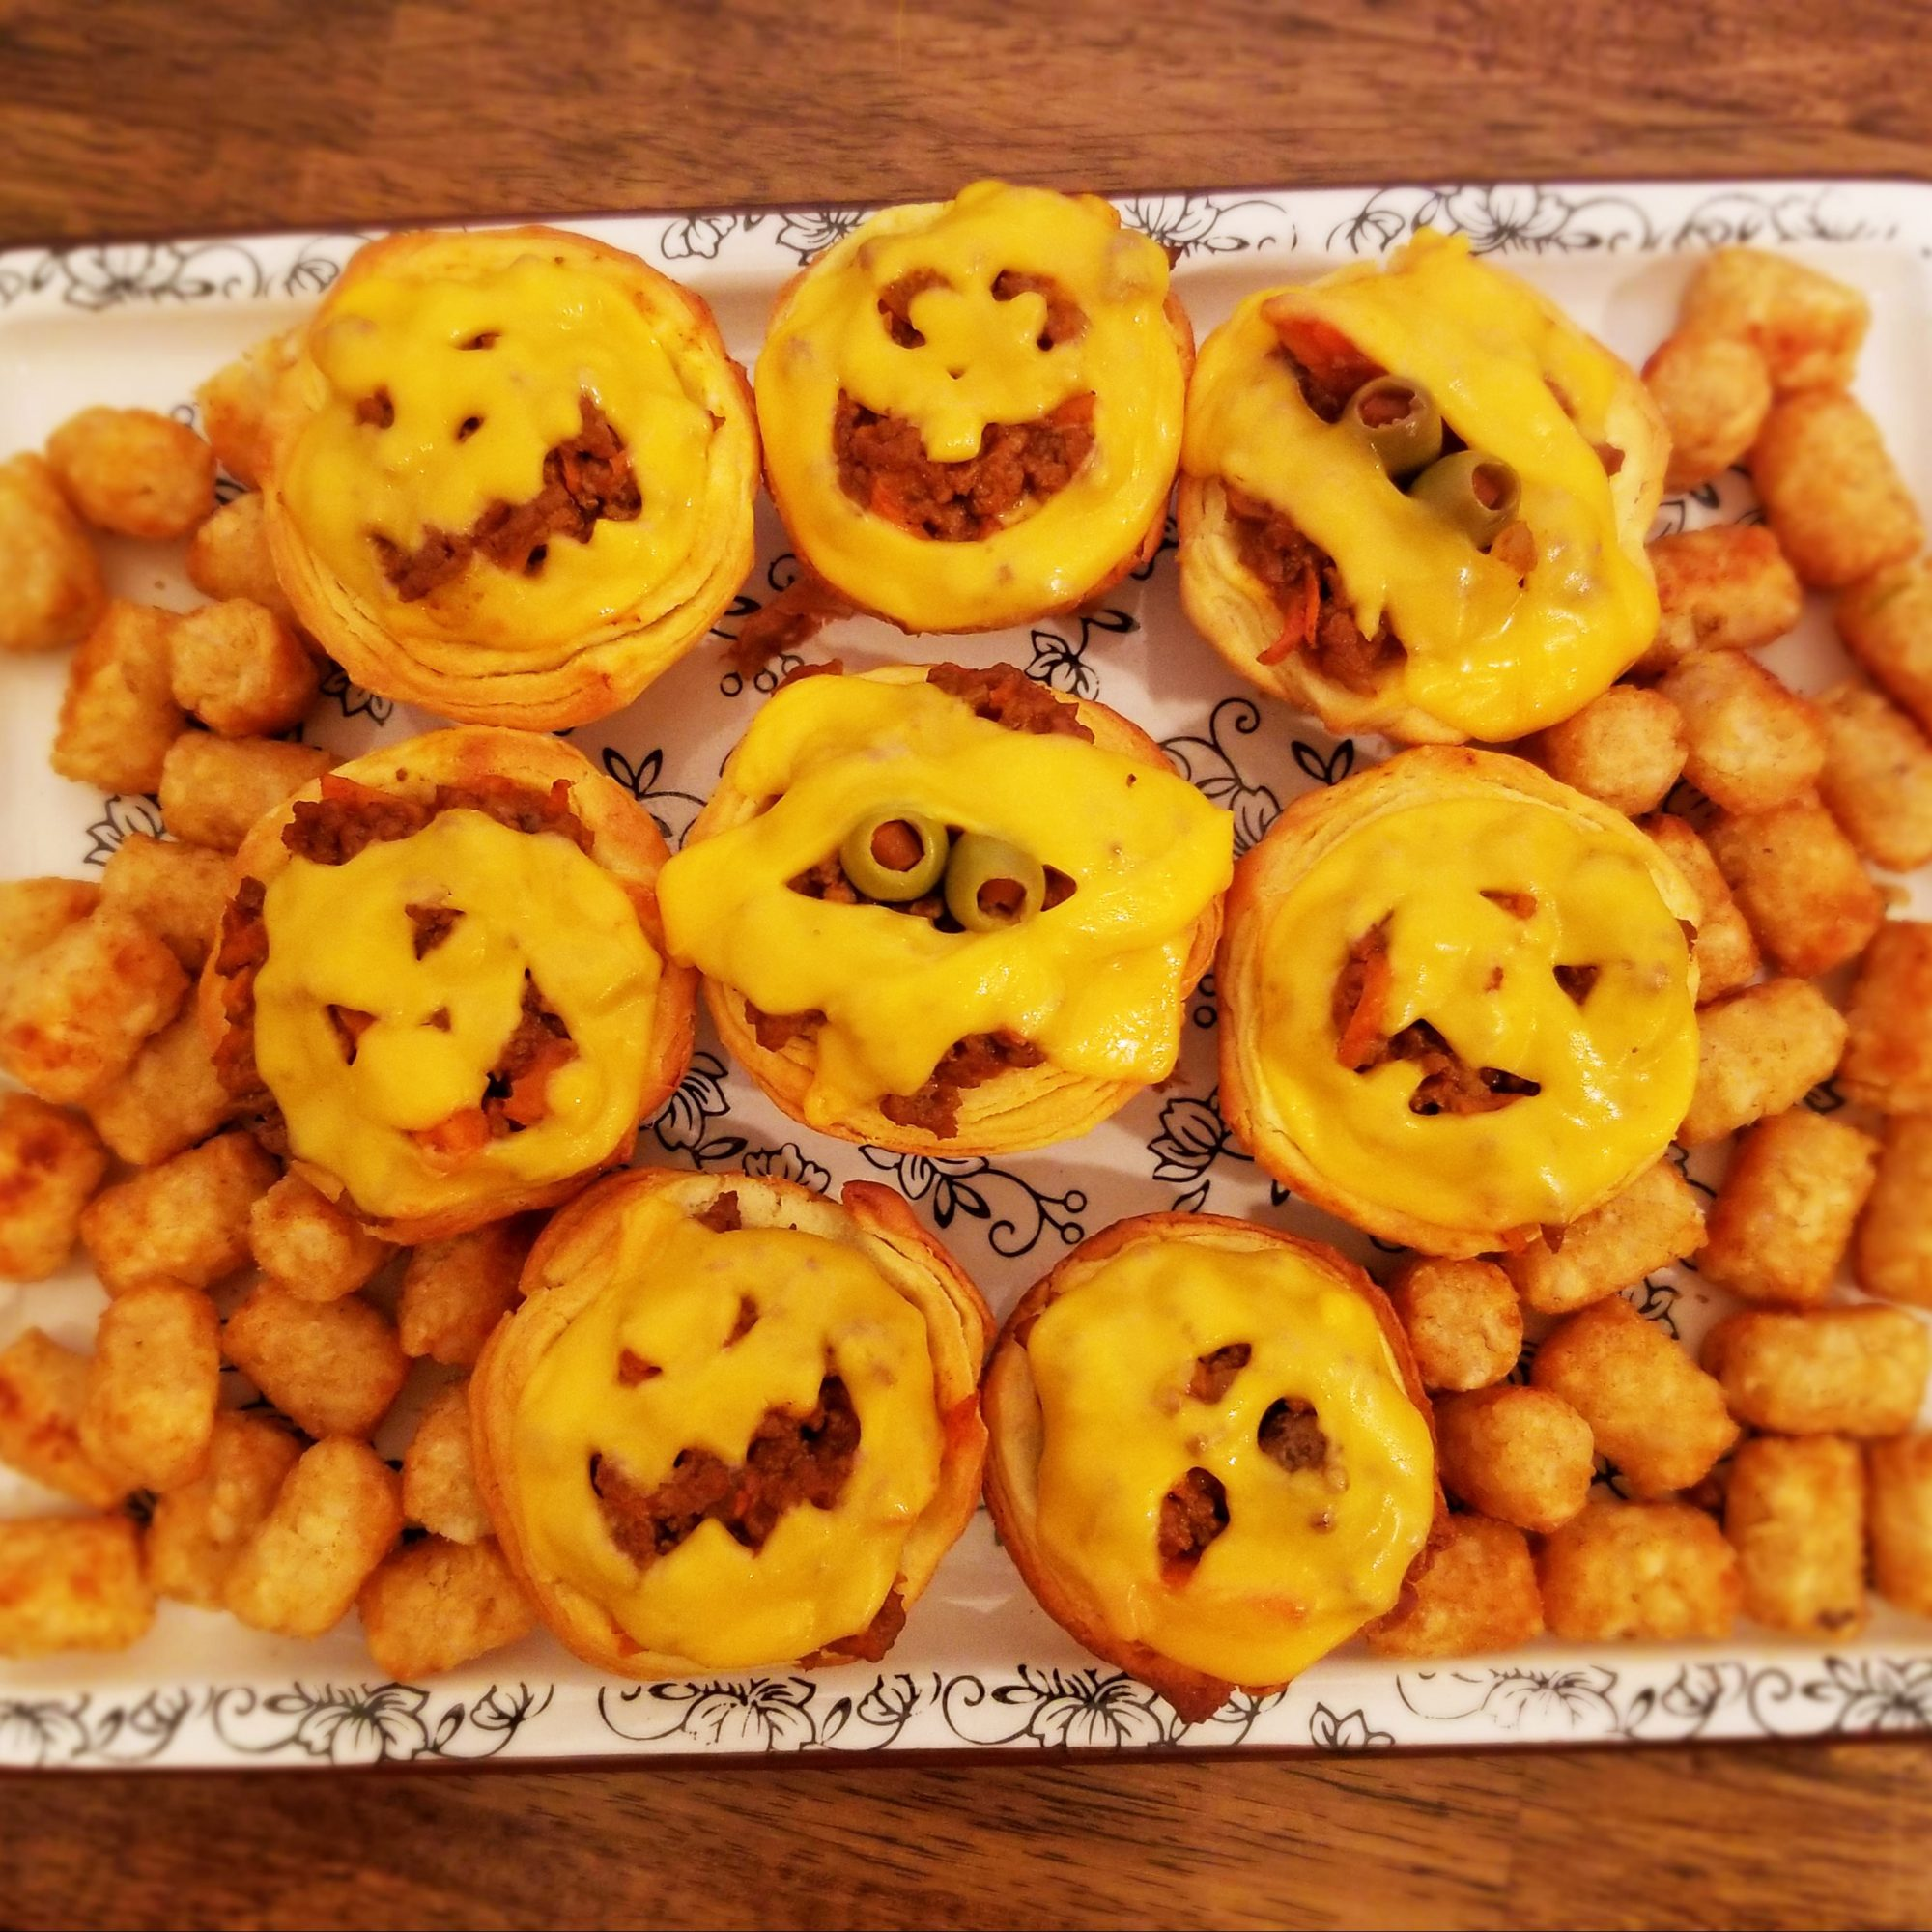 Beef pies with tater tots